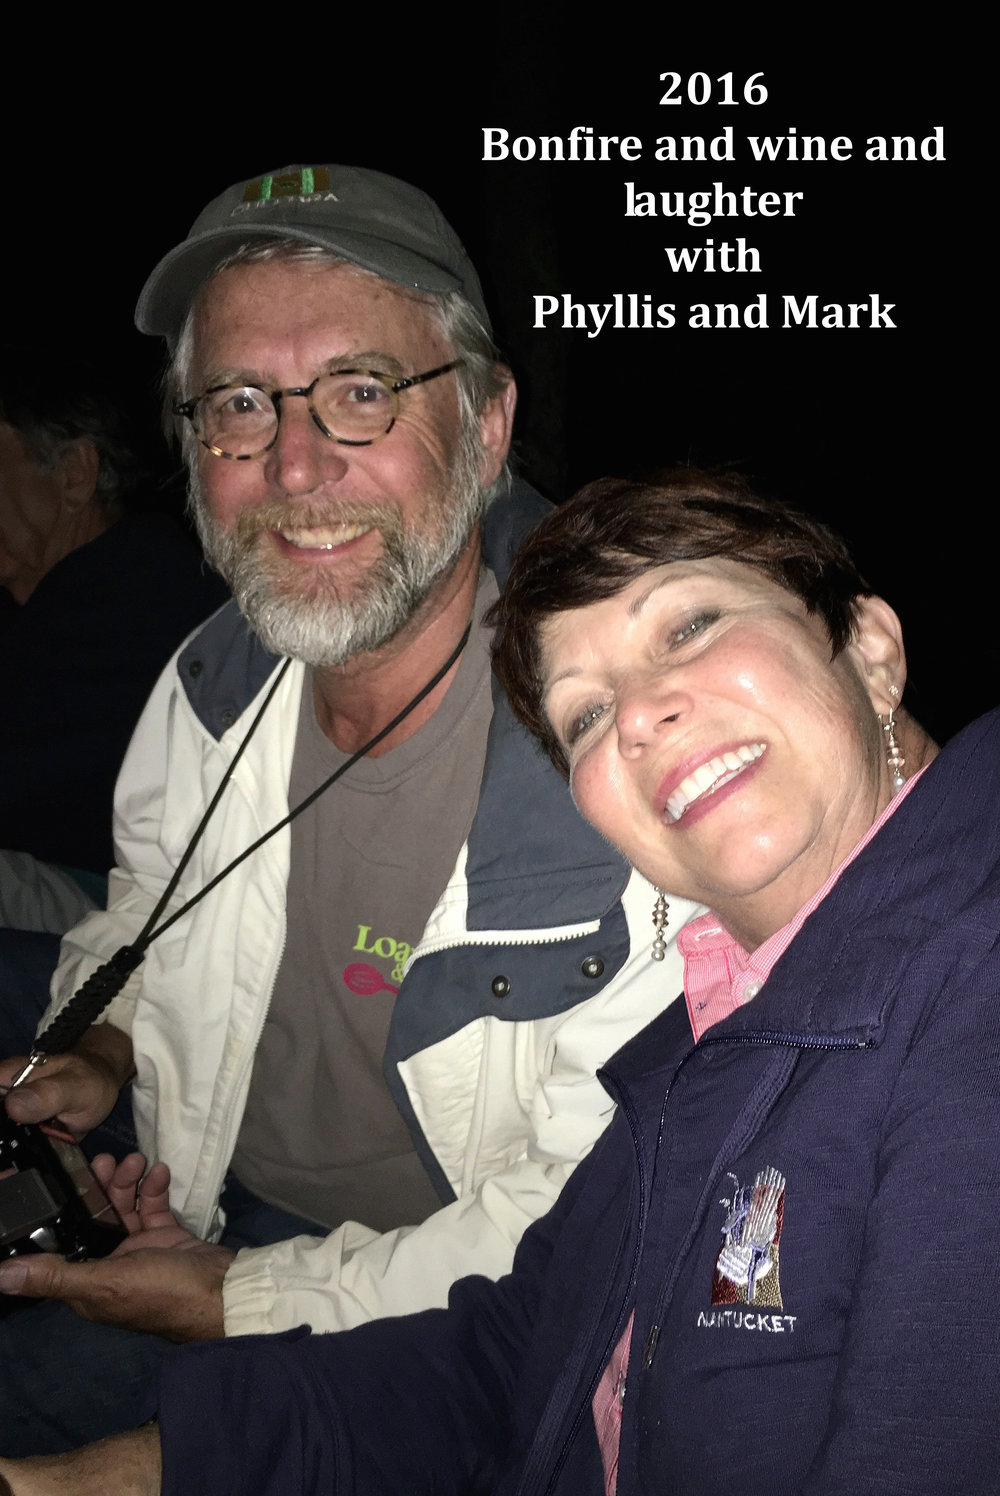 2016 Bonfire and wine with Phyllis and Mark.JPG